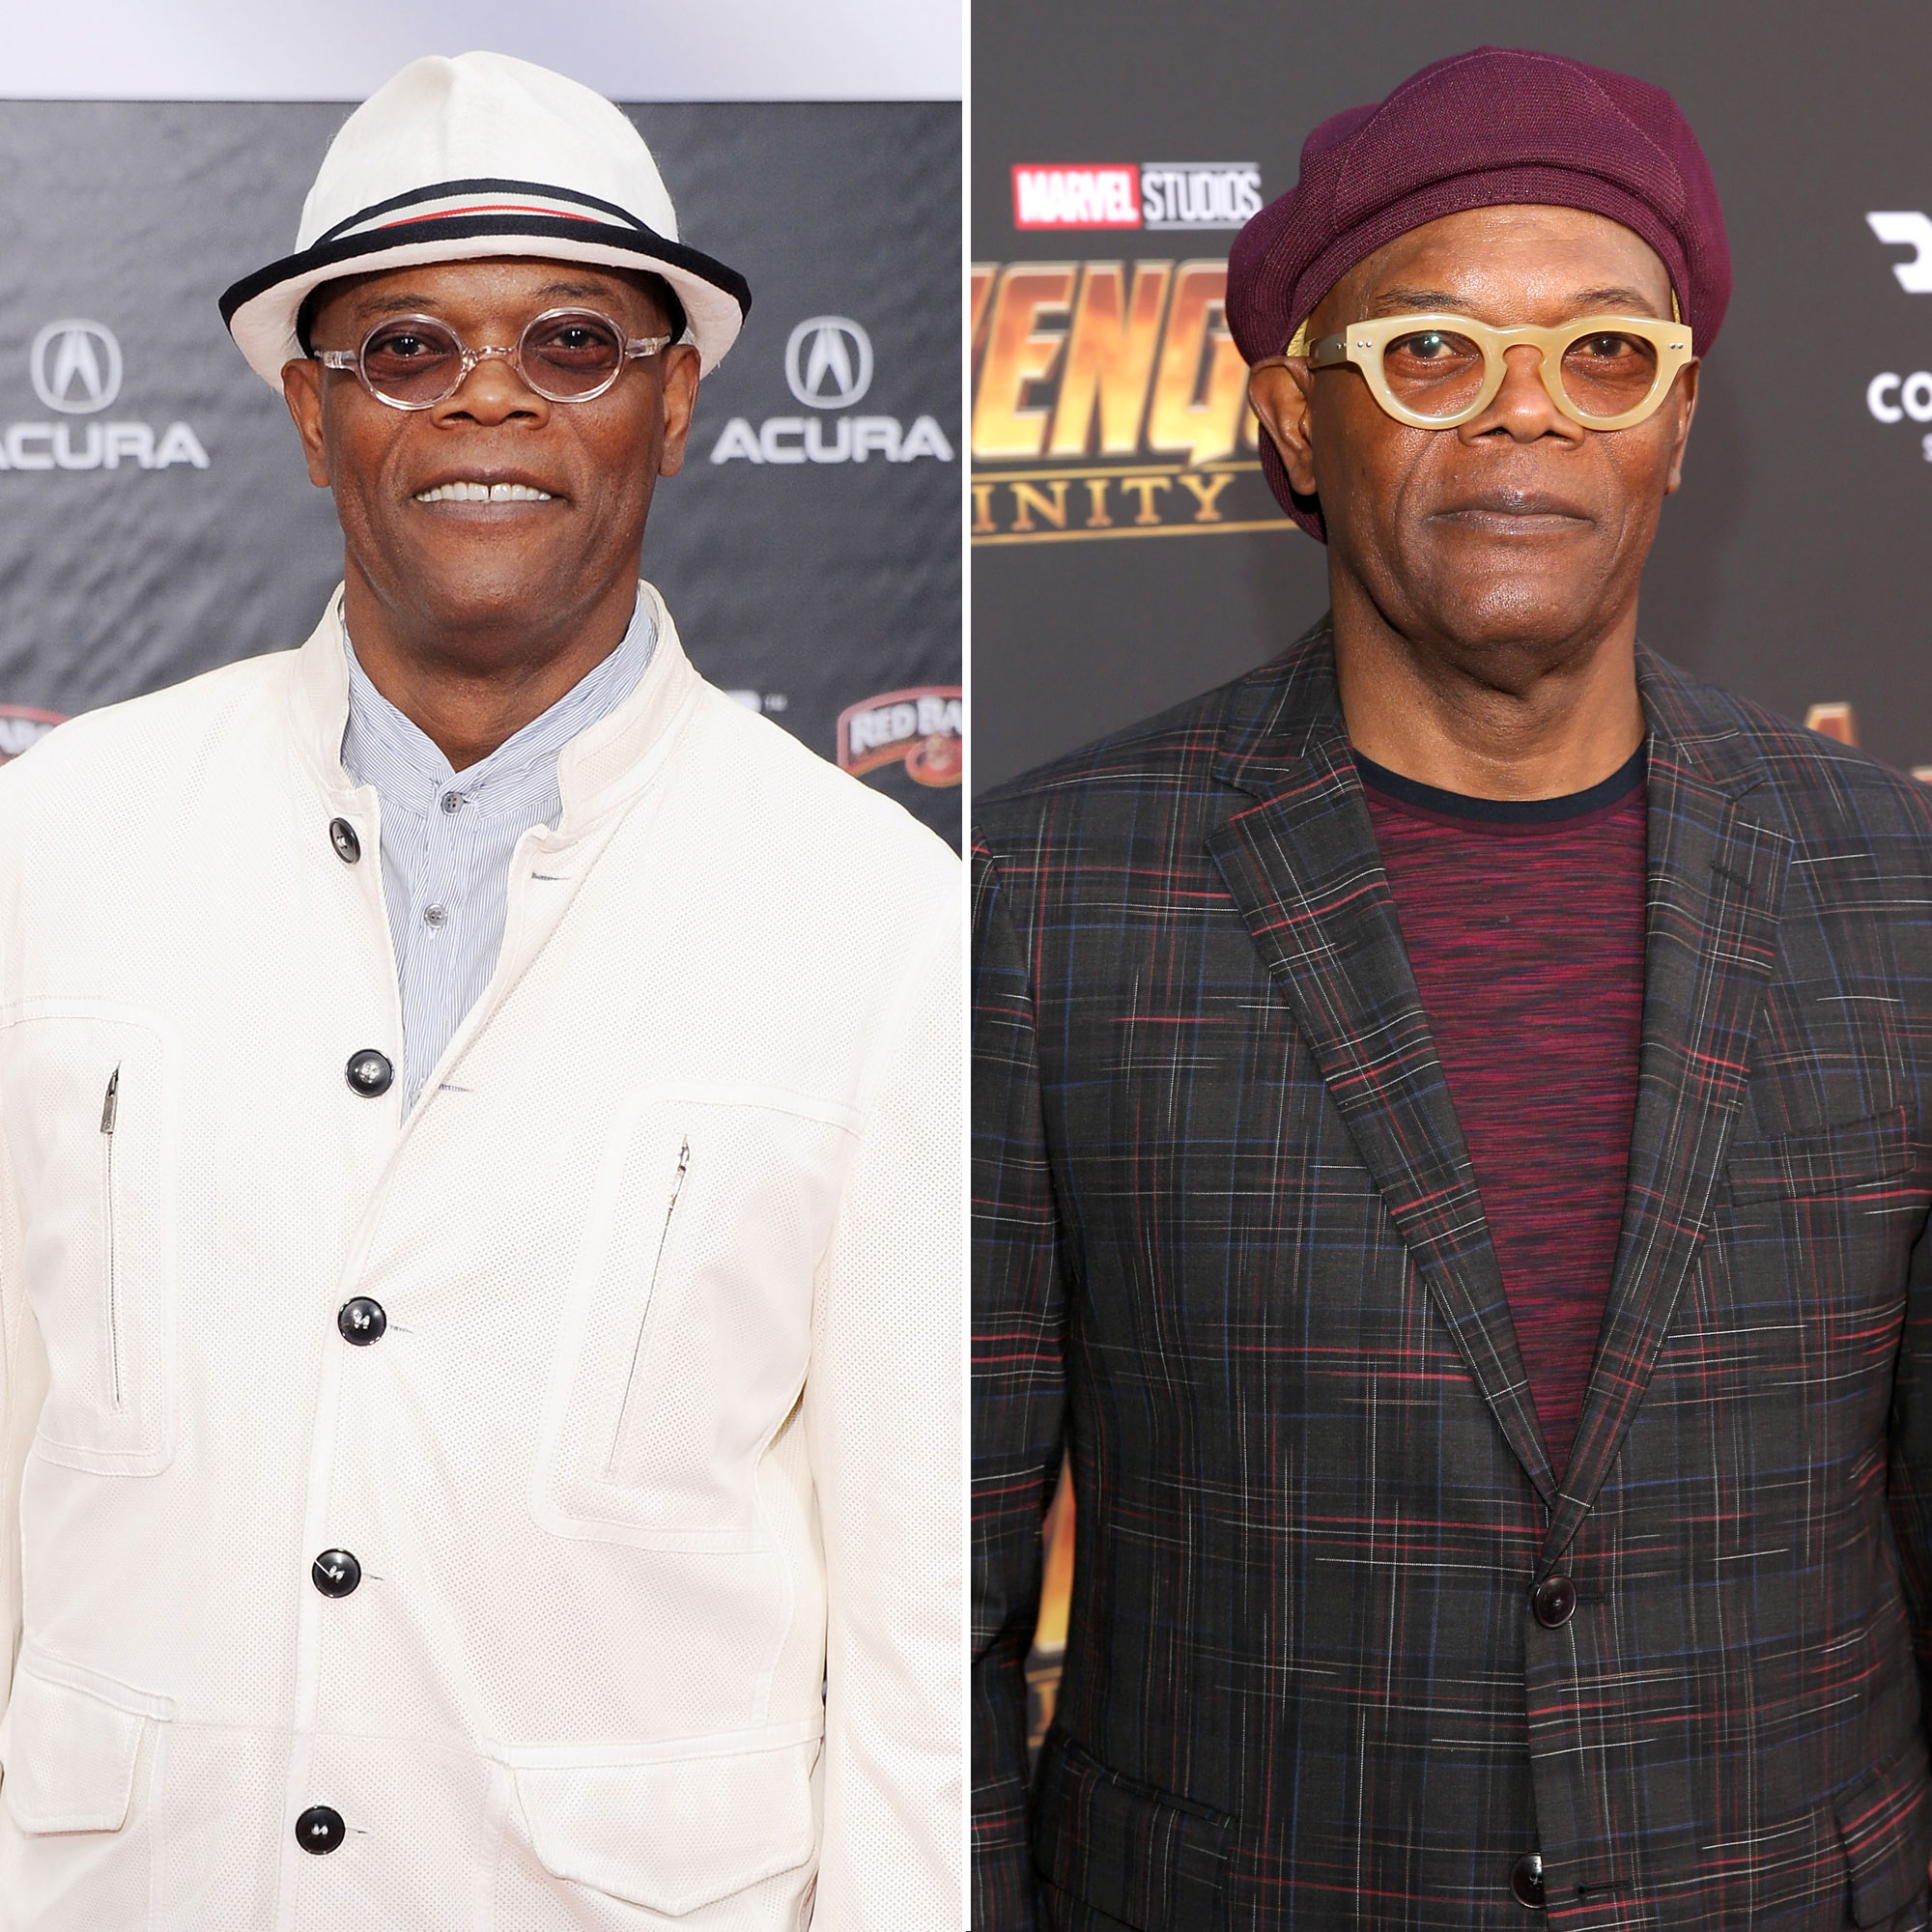 Samuel L. Jackson Avengers Premiere First Super Red Carpet to Their Last - The Pulp Fiction actor gave Rudd a run for his money at the Endgame premiere, appearing to not to have aged a day since the film series' beginning in 2012.